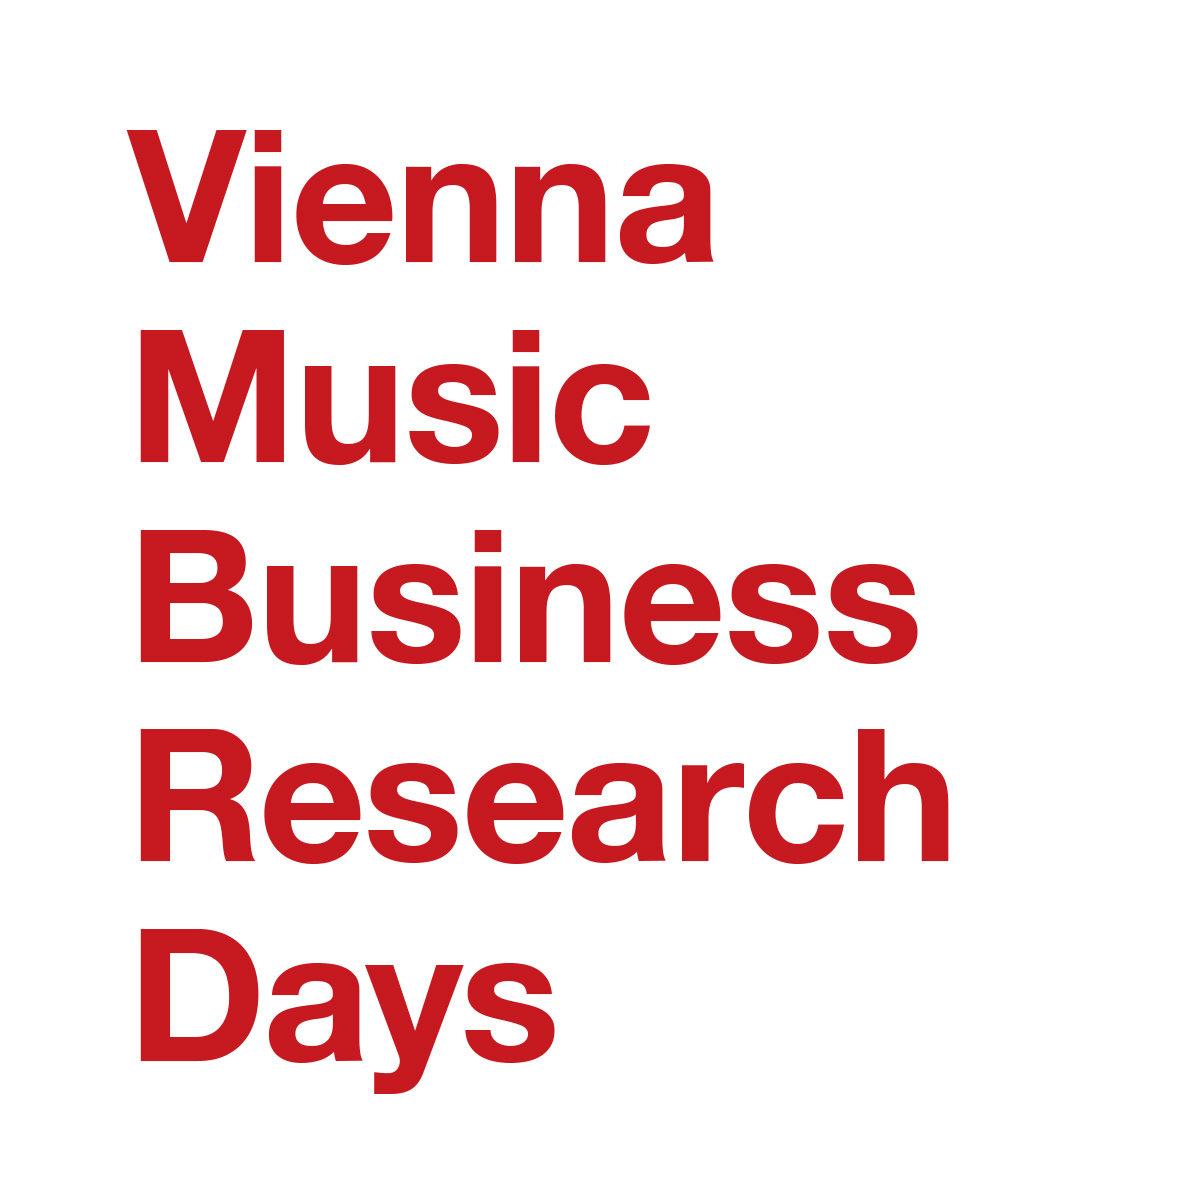 music industry music business research the 8th vienna music business research days will be held at the university of music and performing arts vienna anton von webern platz 1